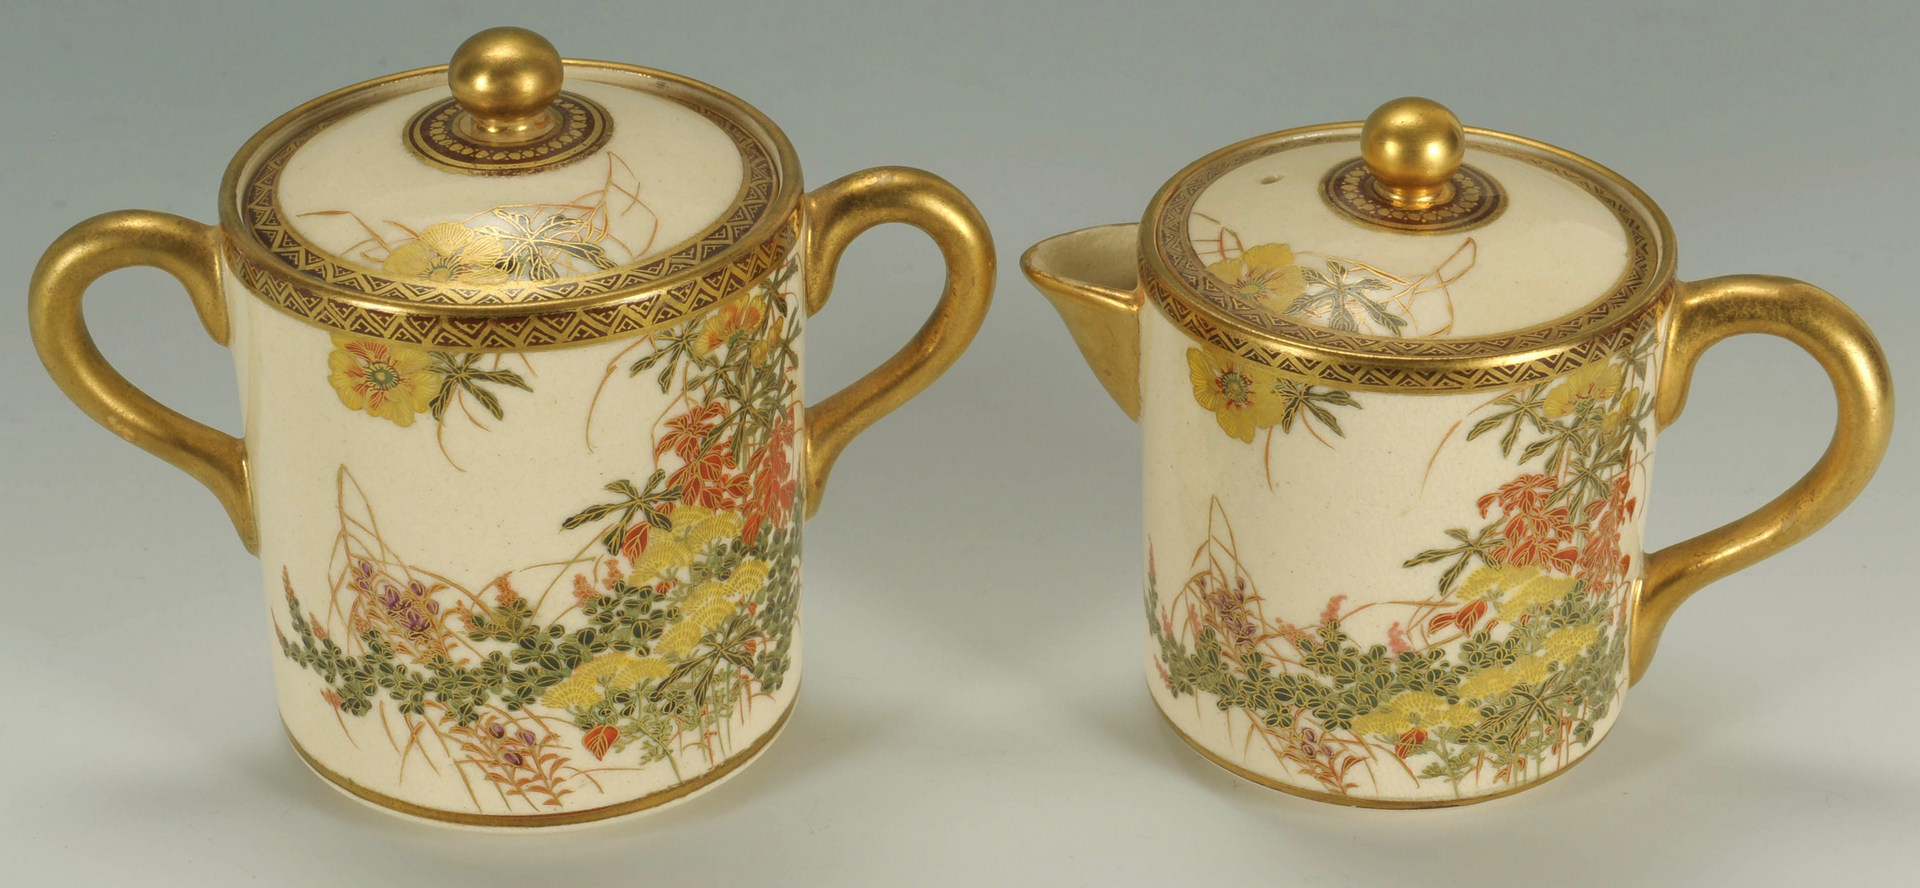 Lot 483: Japanese Satsuma Coffee Set, 9 pieces